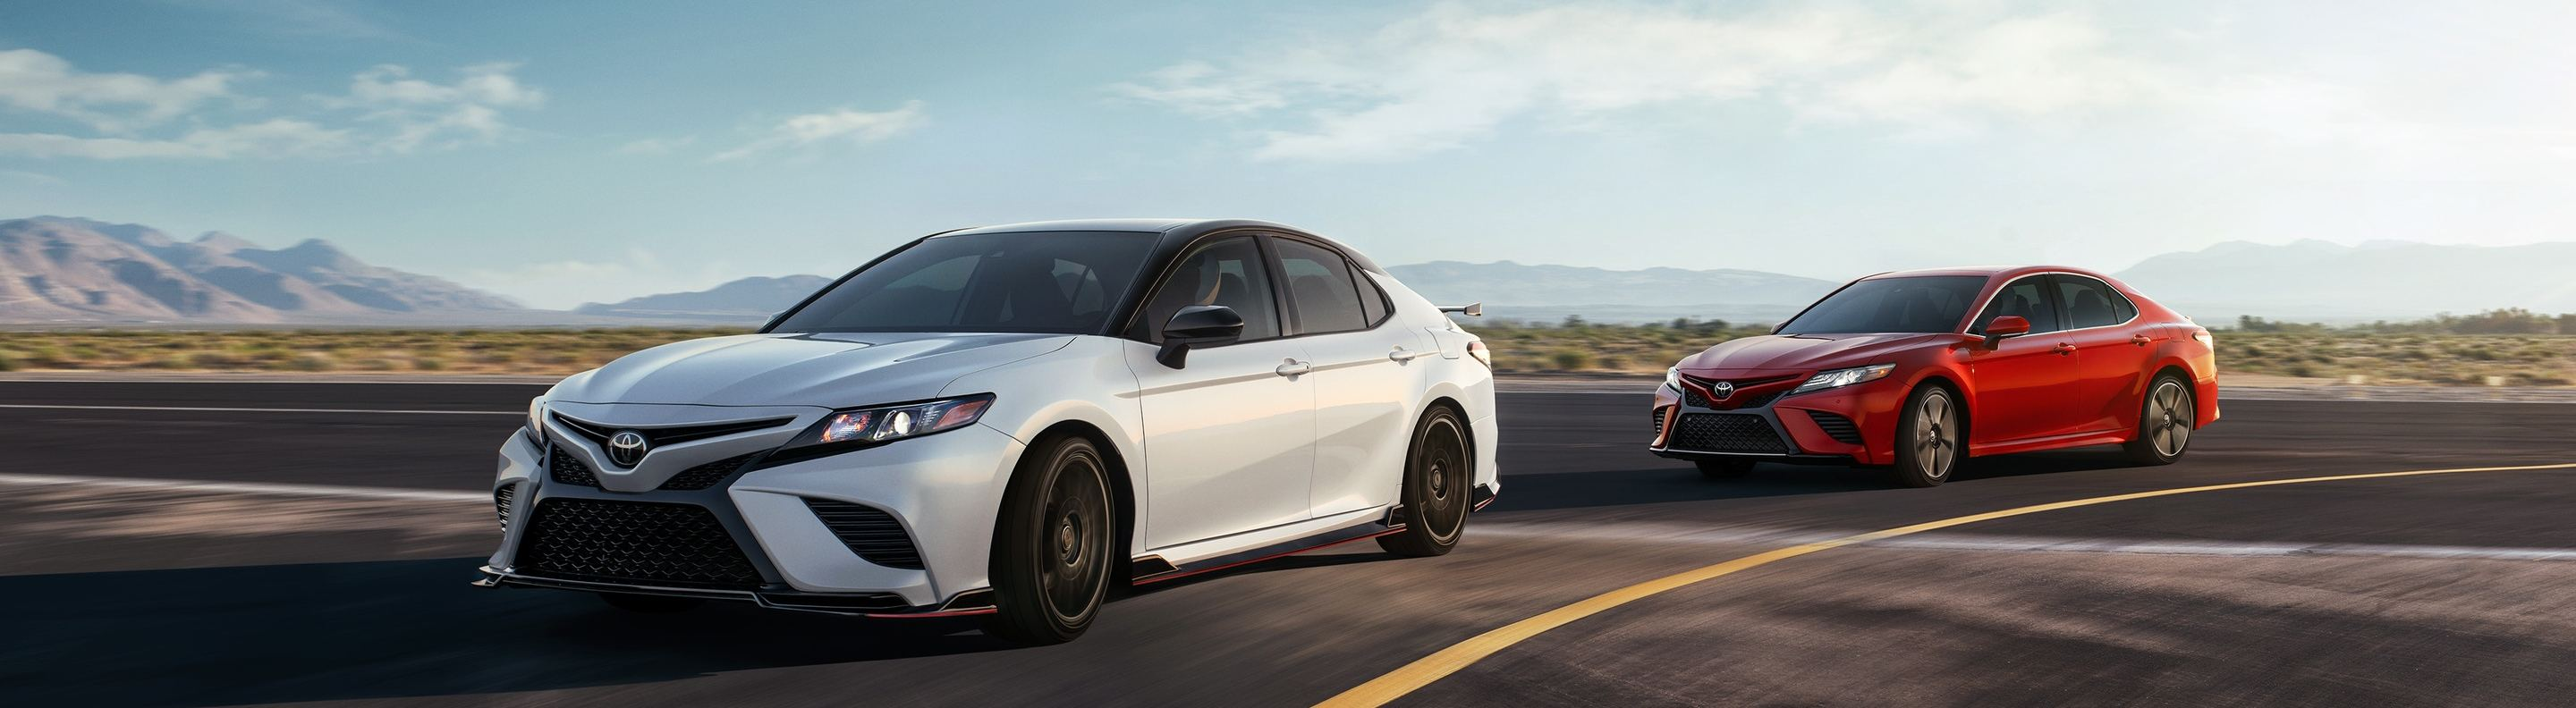 2020 Toyota Camry for Sale near Thorndale, PA